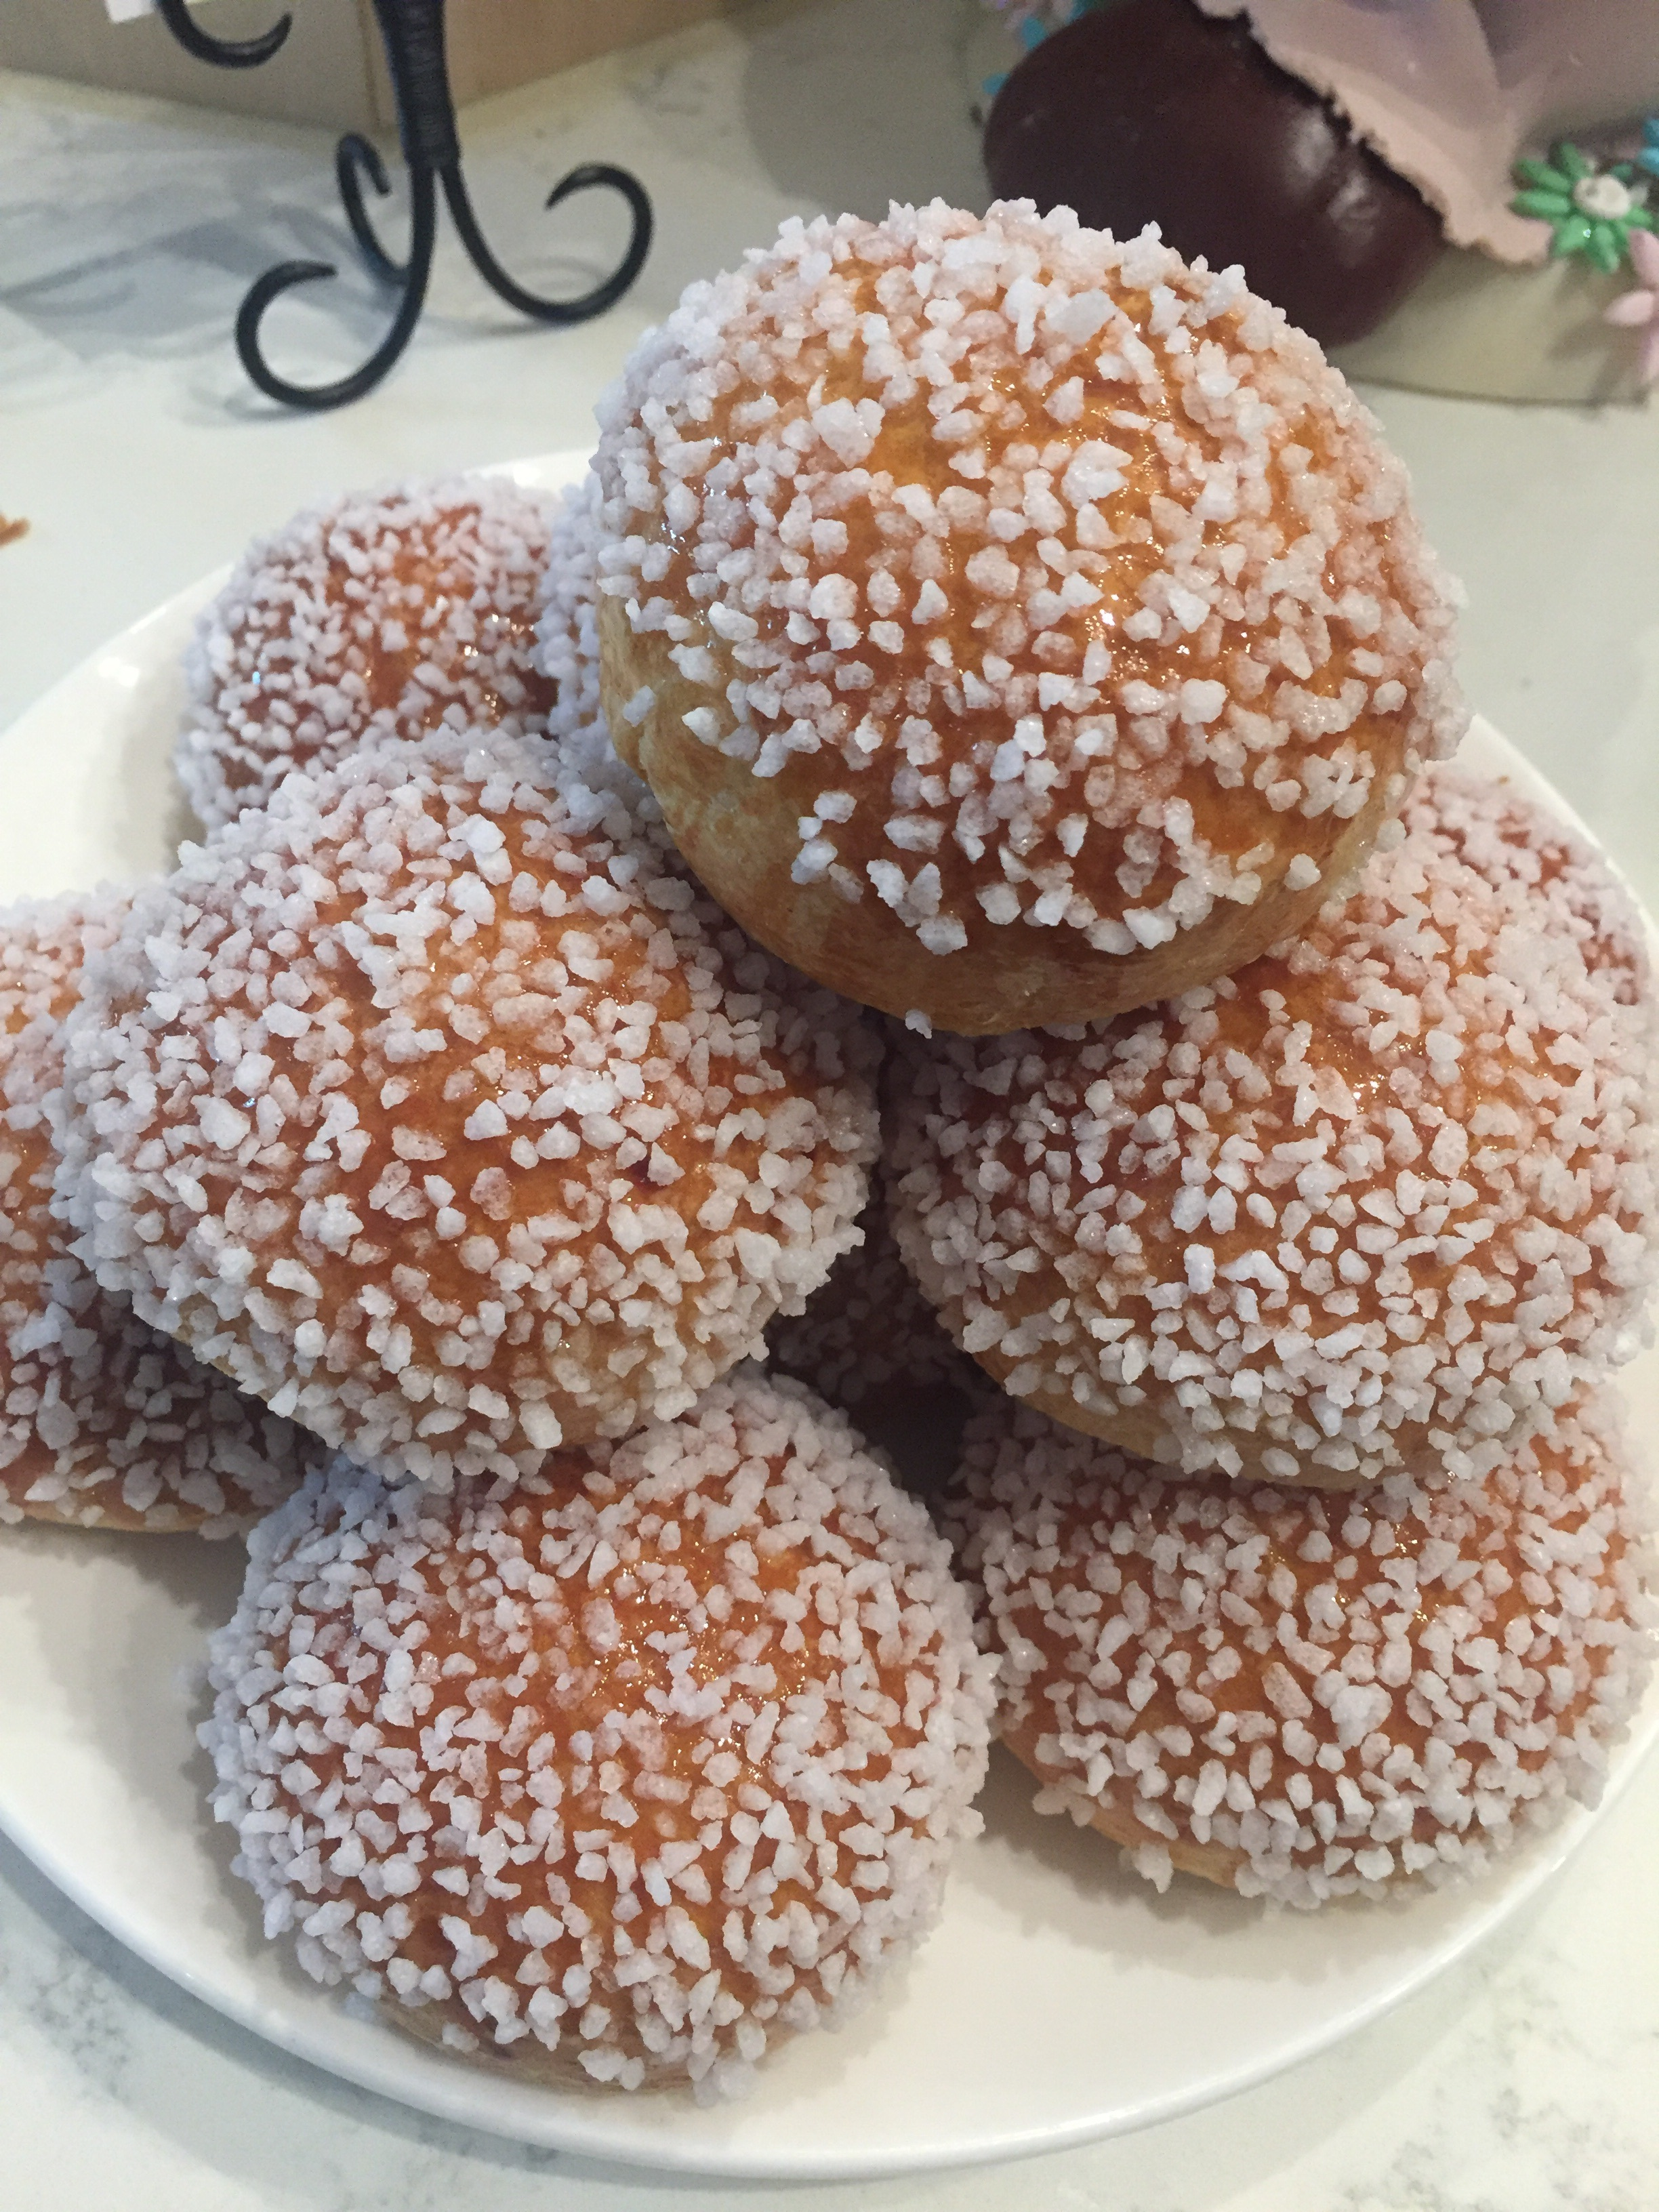 Sugared Doughnuts by Franck. Image property of The Entertaining House.